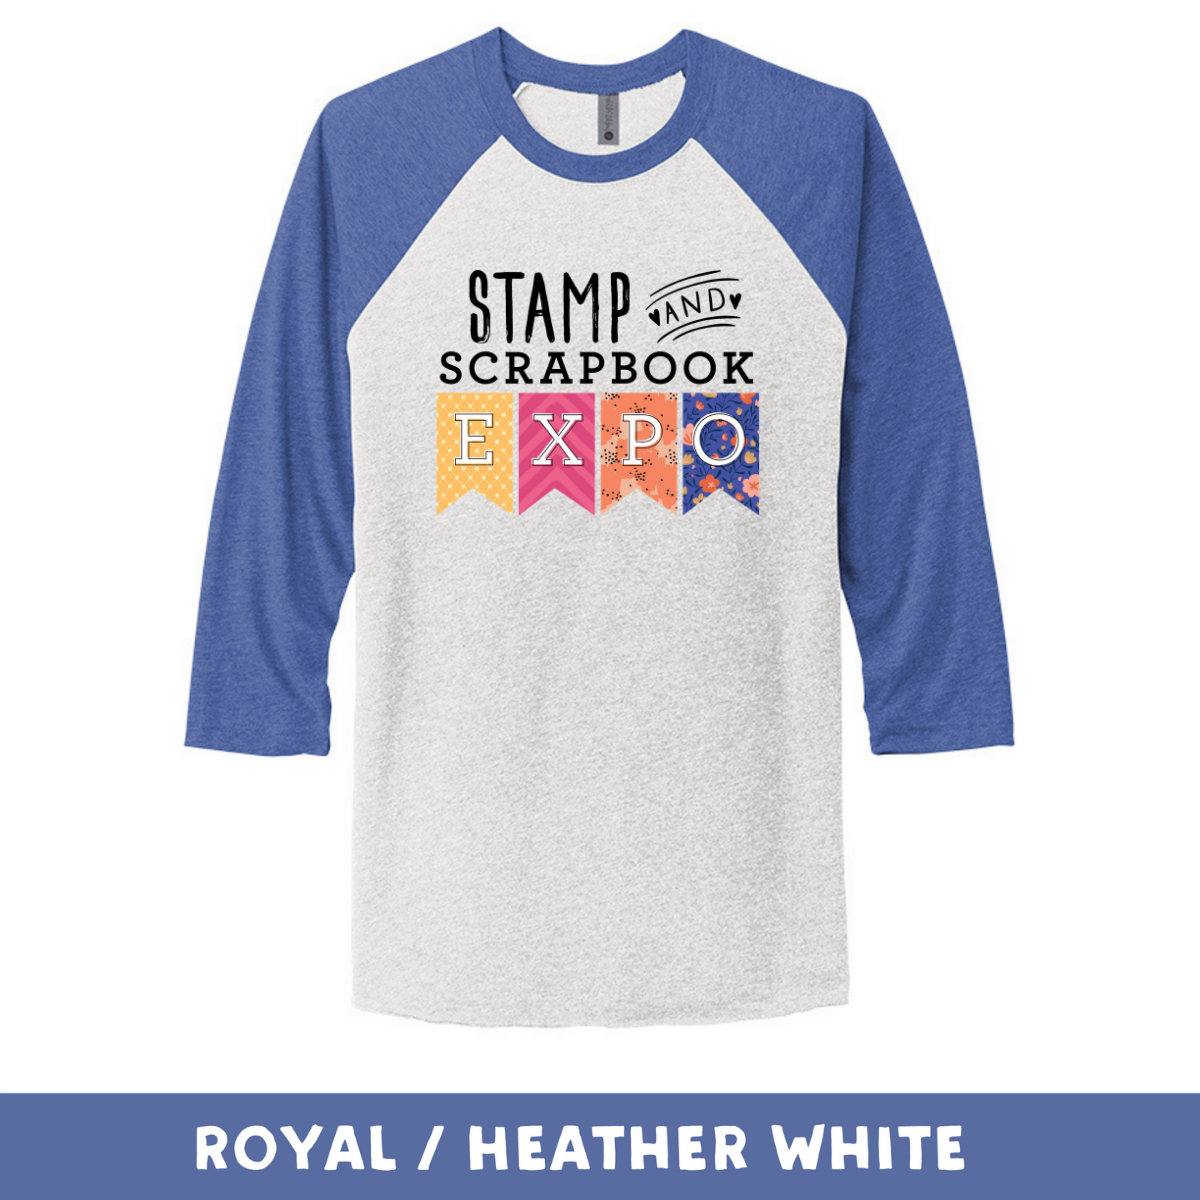 Royal Heather White - Unisex Tri-Blend 3/4 Sleeve Raglan Tee - Stamp & Scrapbook Expo Color Logo